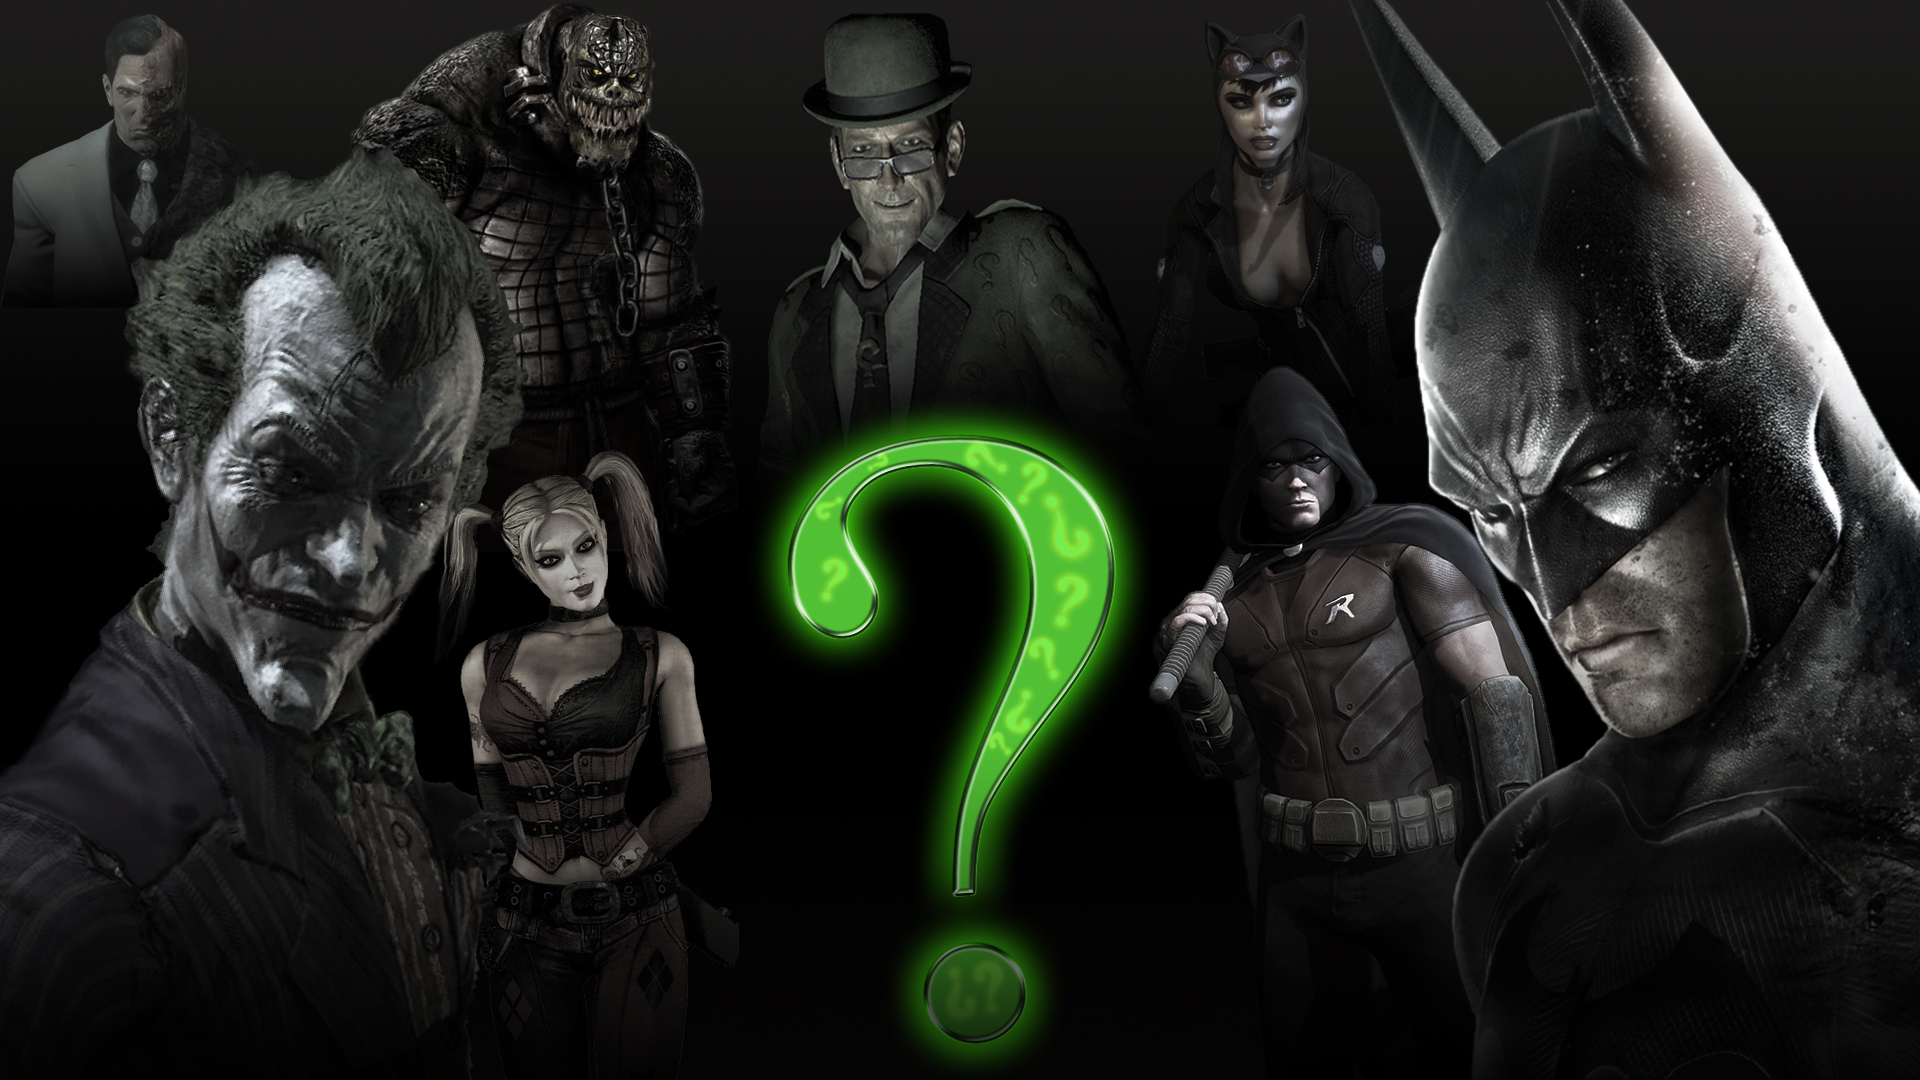 Game Batman Arkham City Batman Arkham City The Joker Riddle Wallpaper 1920x1080